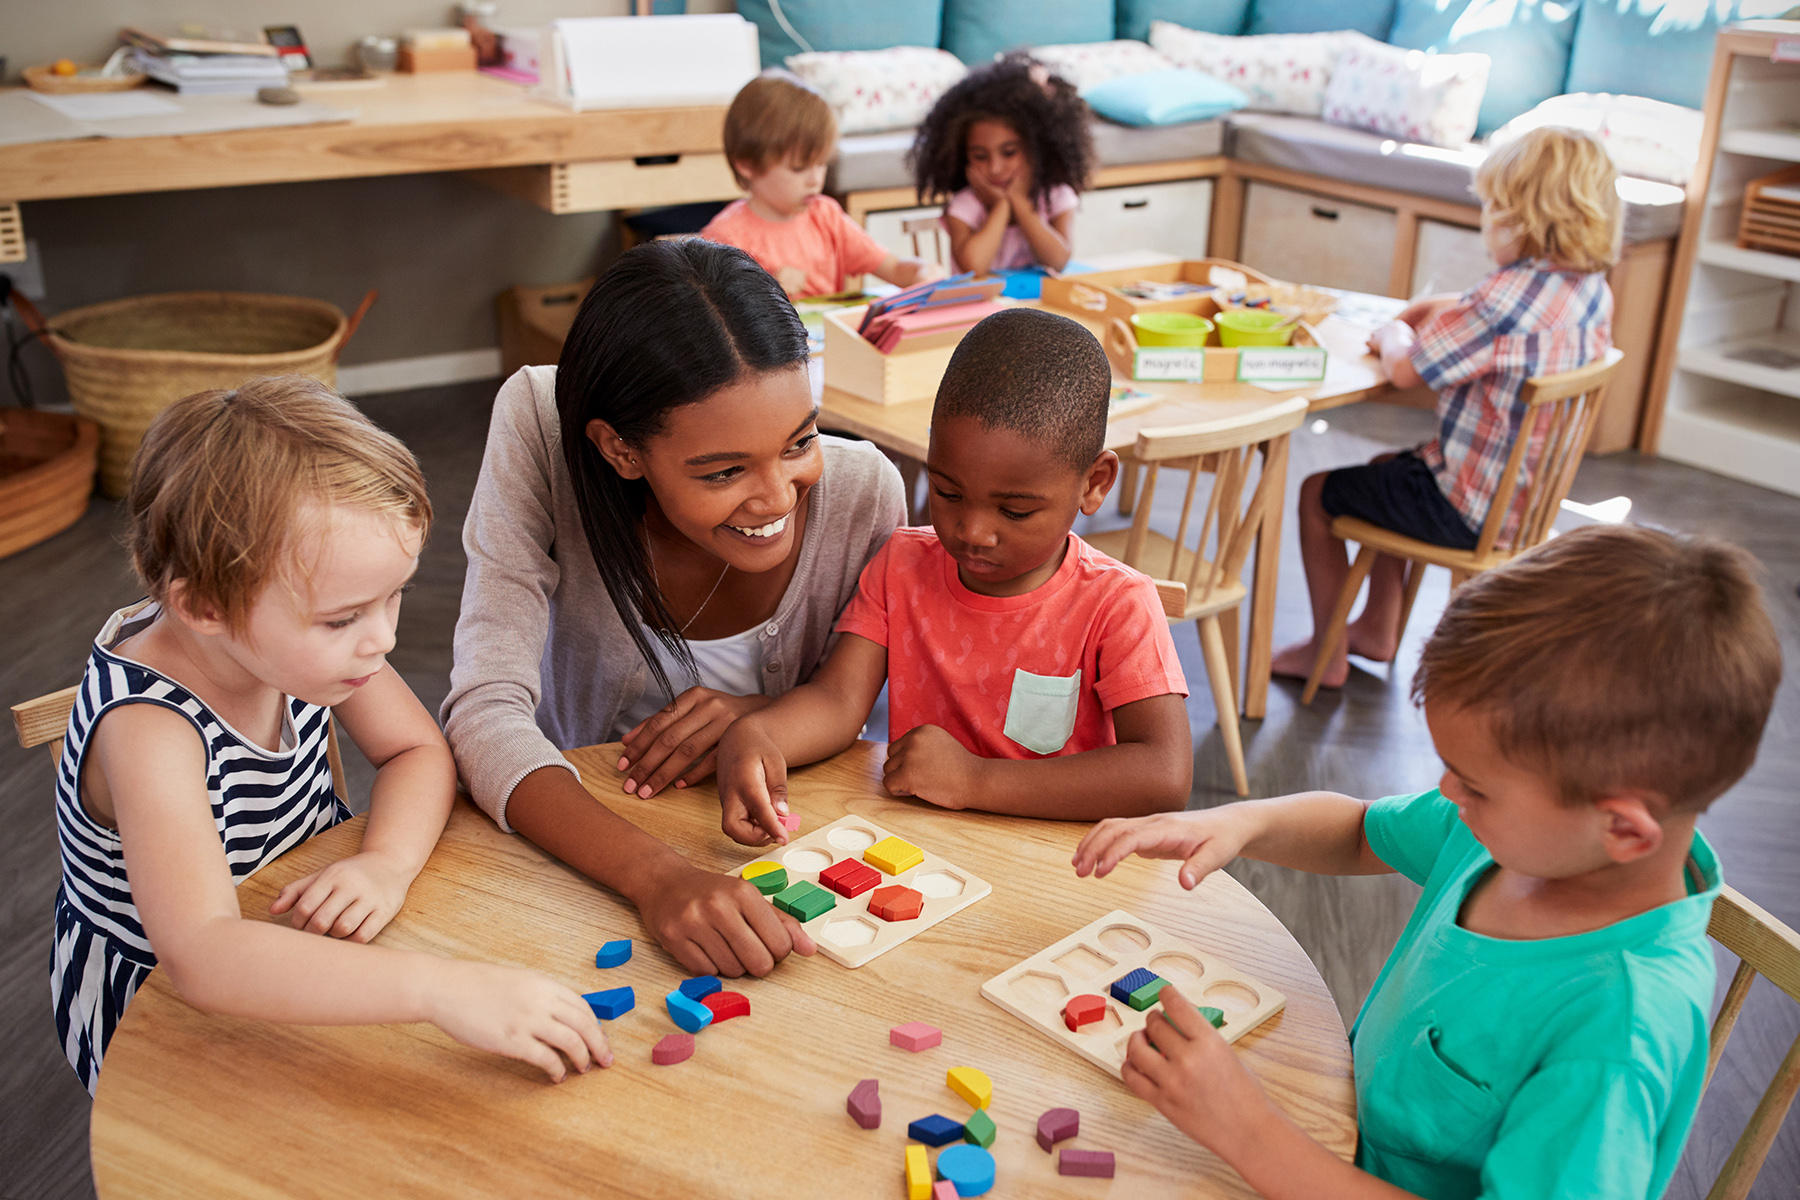 deducting childcare from your income tax return in France